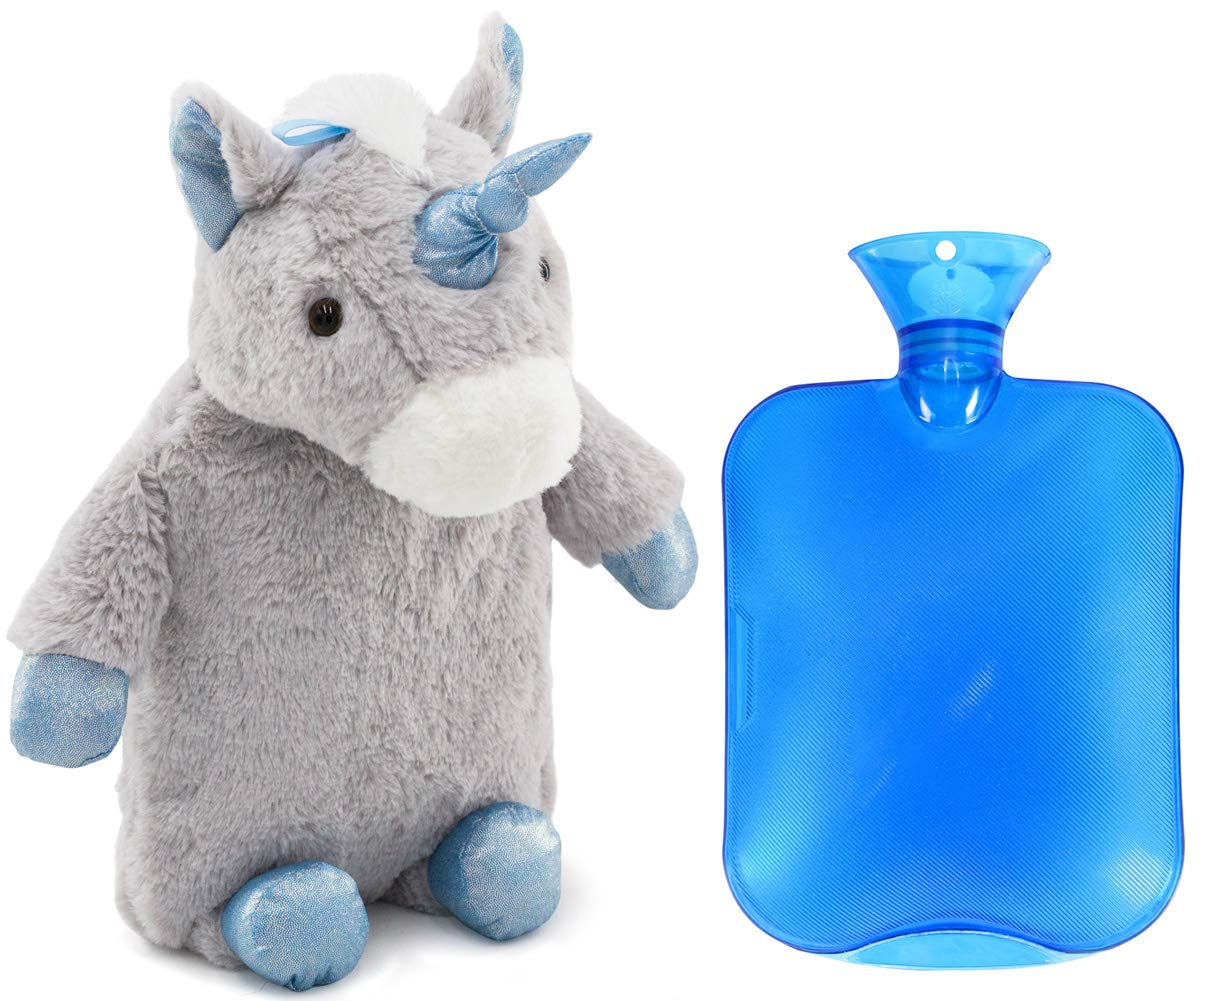 HomeTop Premium Classic PVC Hot Water Bottle with Cute Unicorn Cover (2L, Gray) by HomeTop